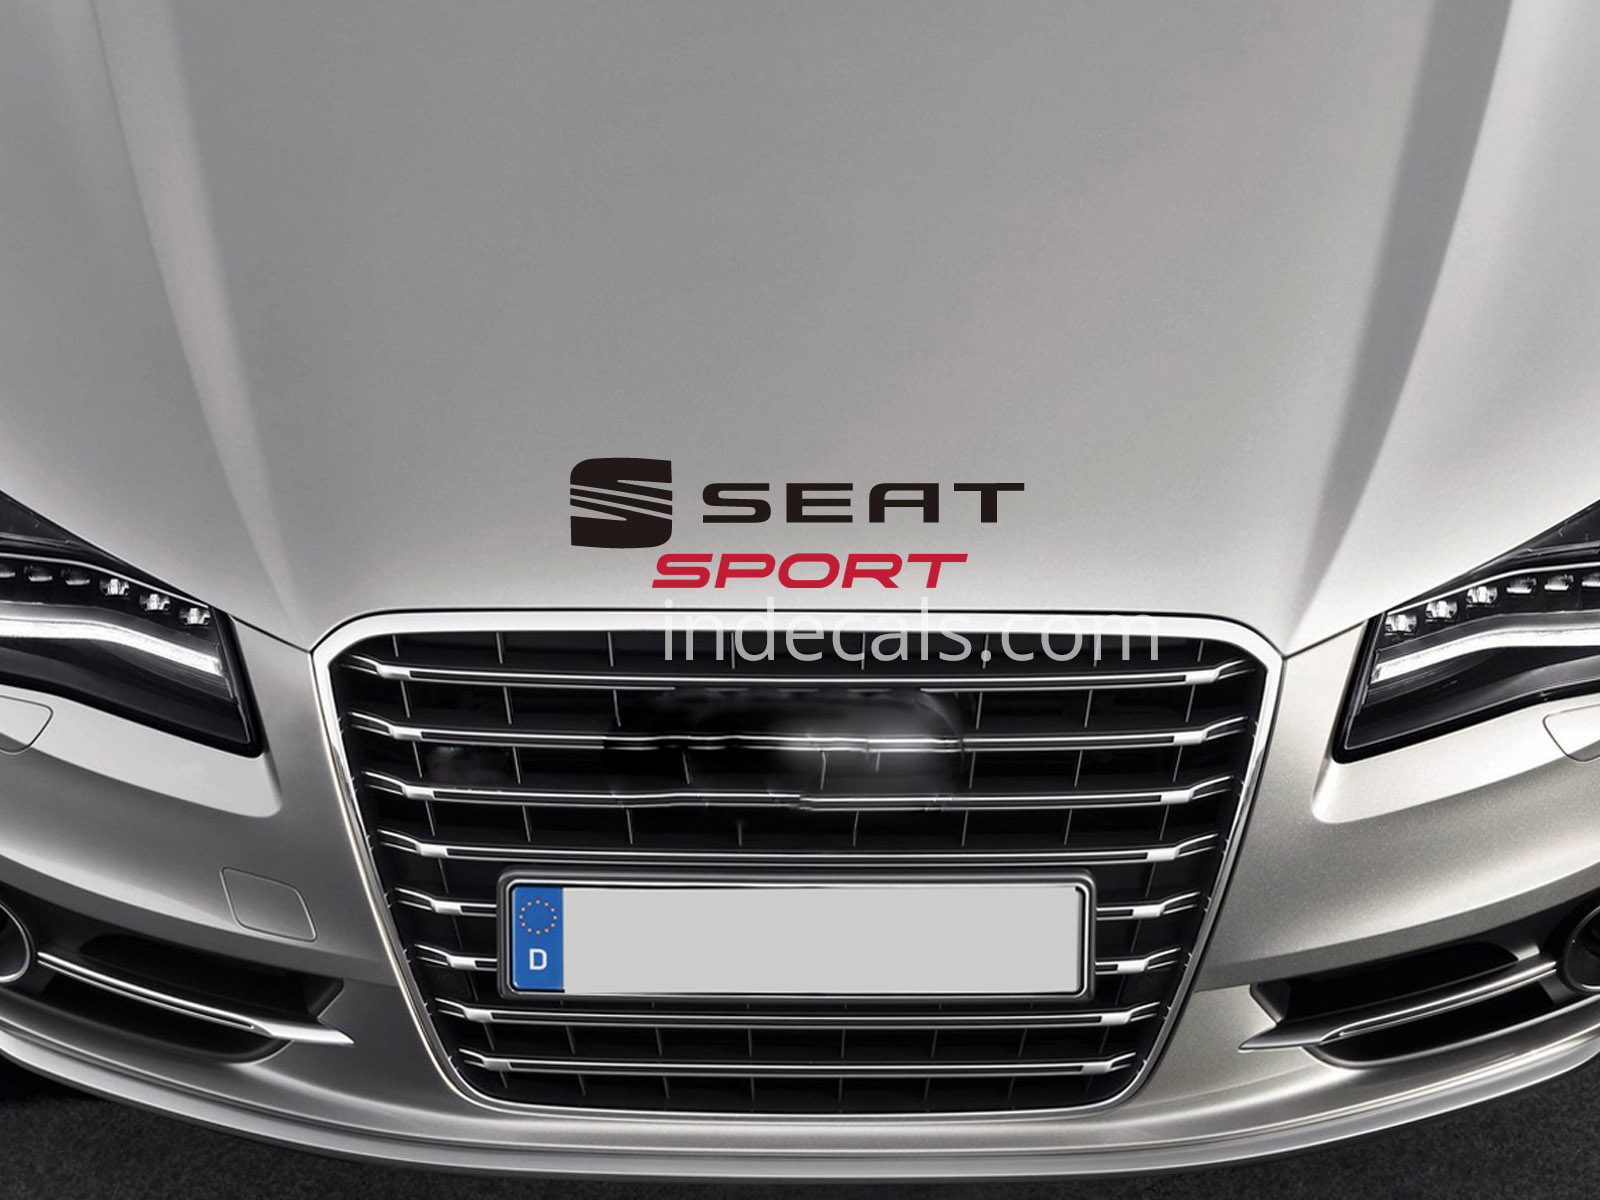 1 x Seat Sport Sticker for Bonnet - Black & Red